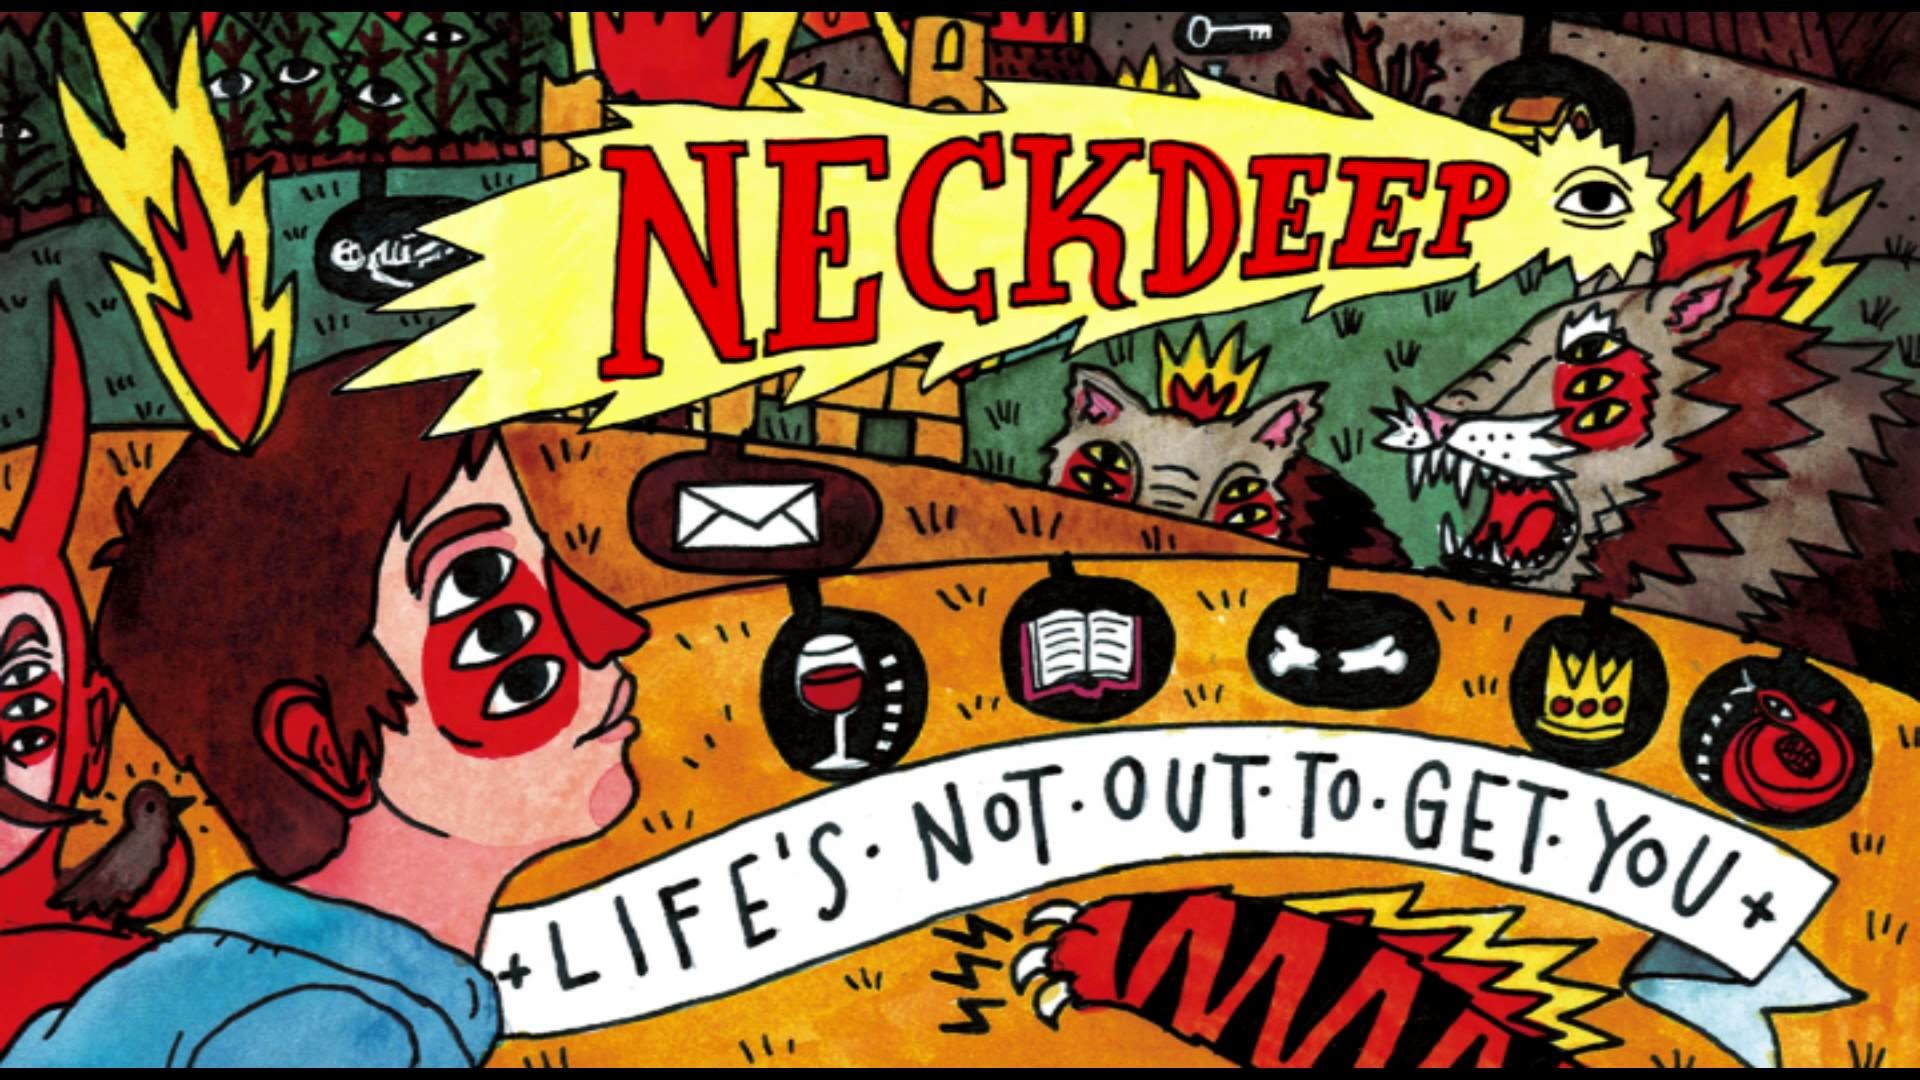 1920x1080 neck deep life's not out to get you album artwork - Google Search